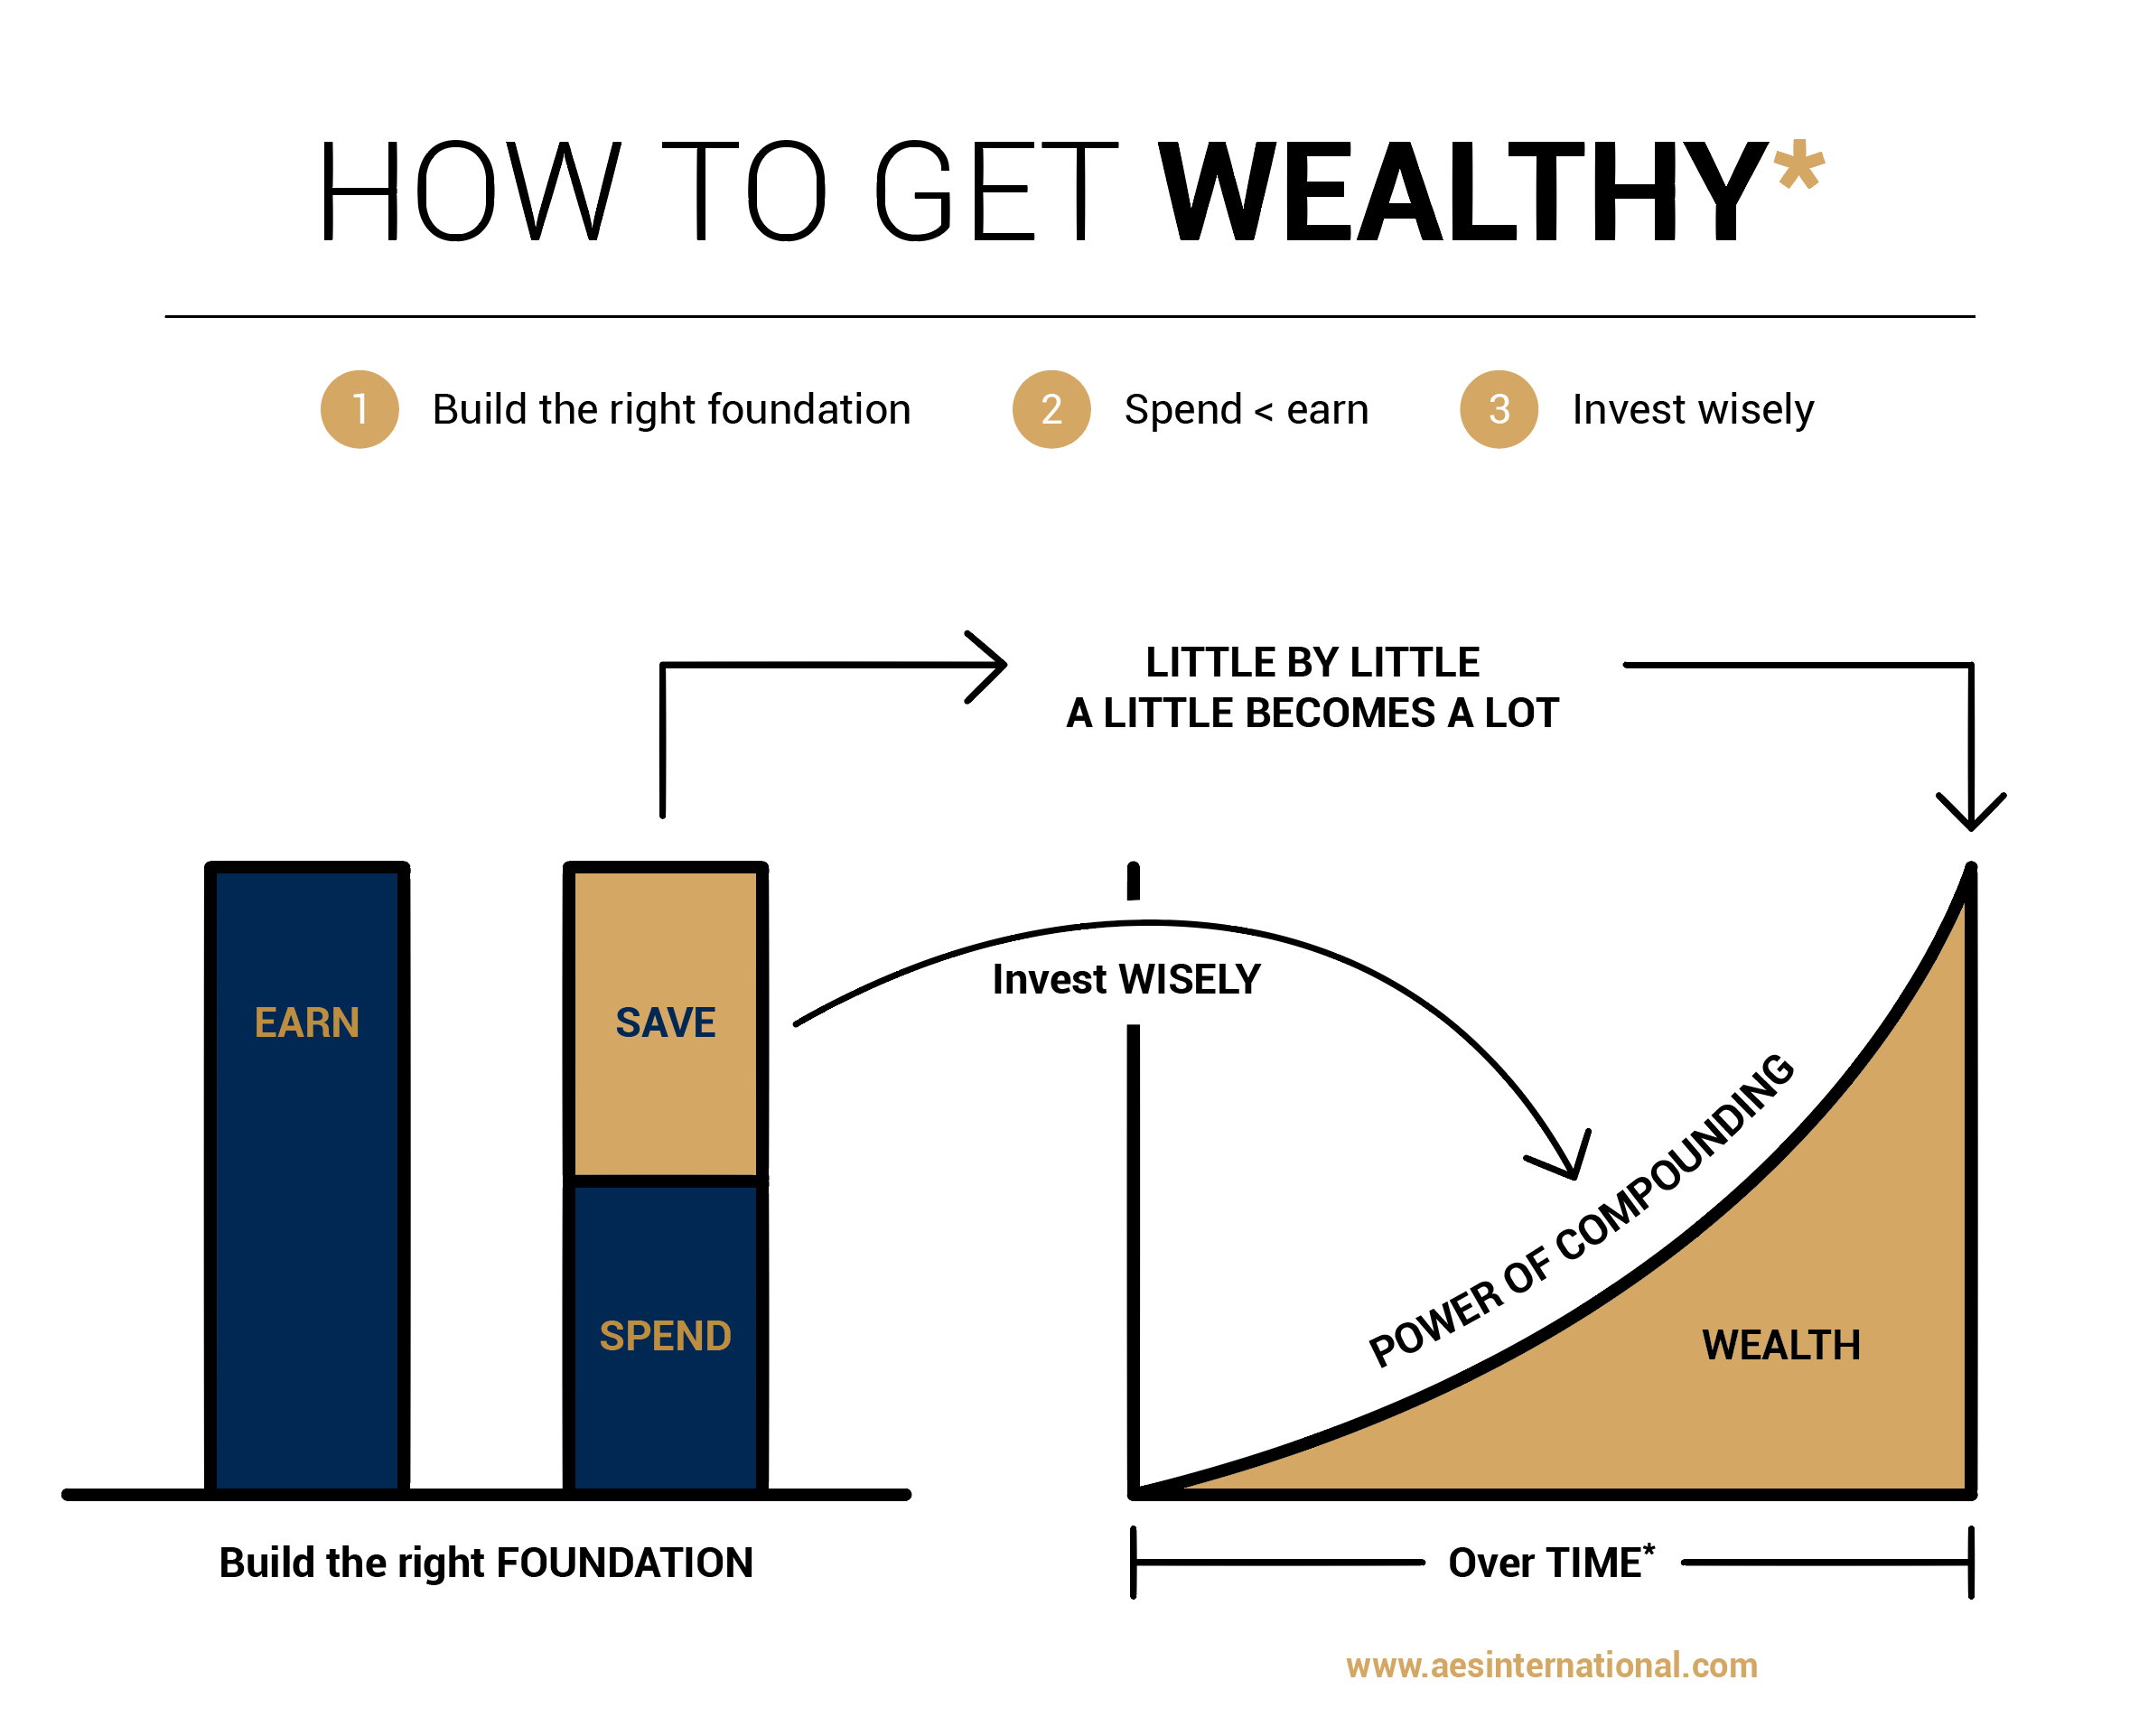 How to get wealthy over time-1